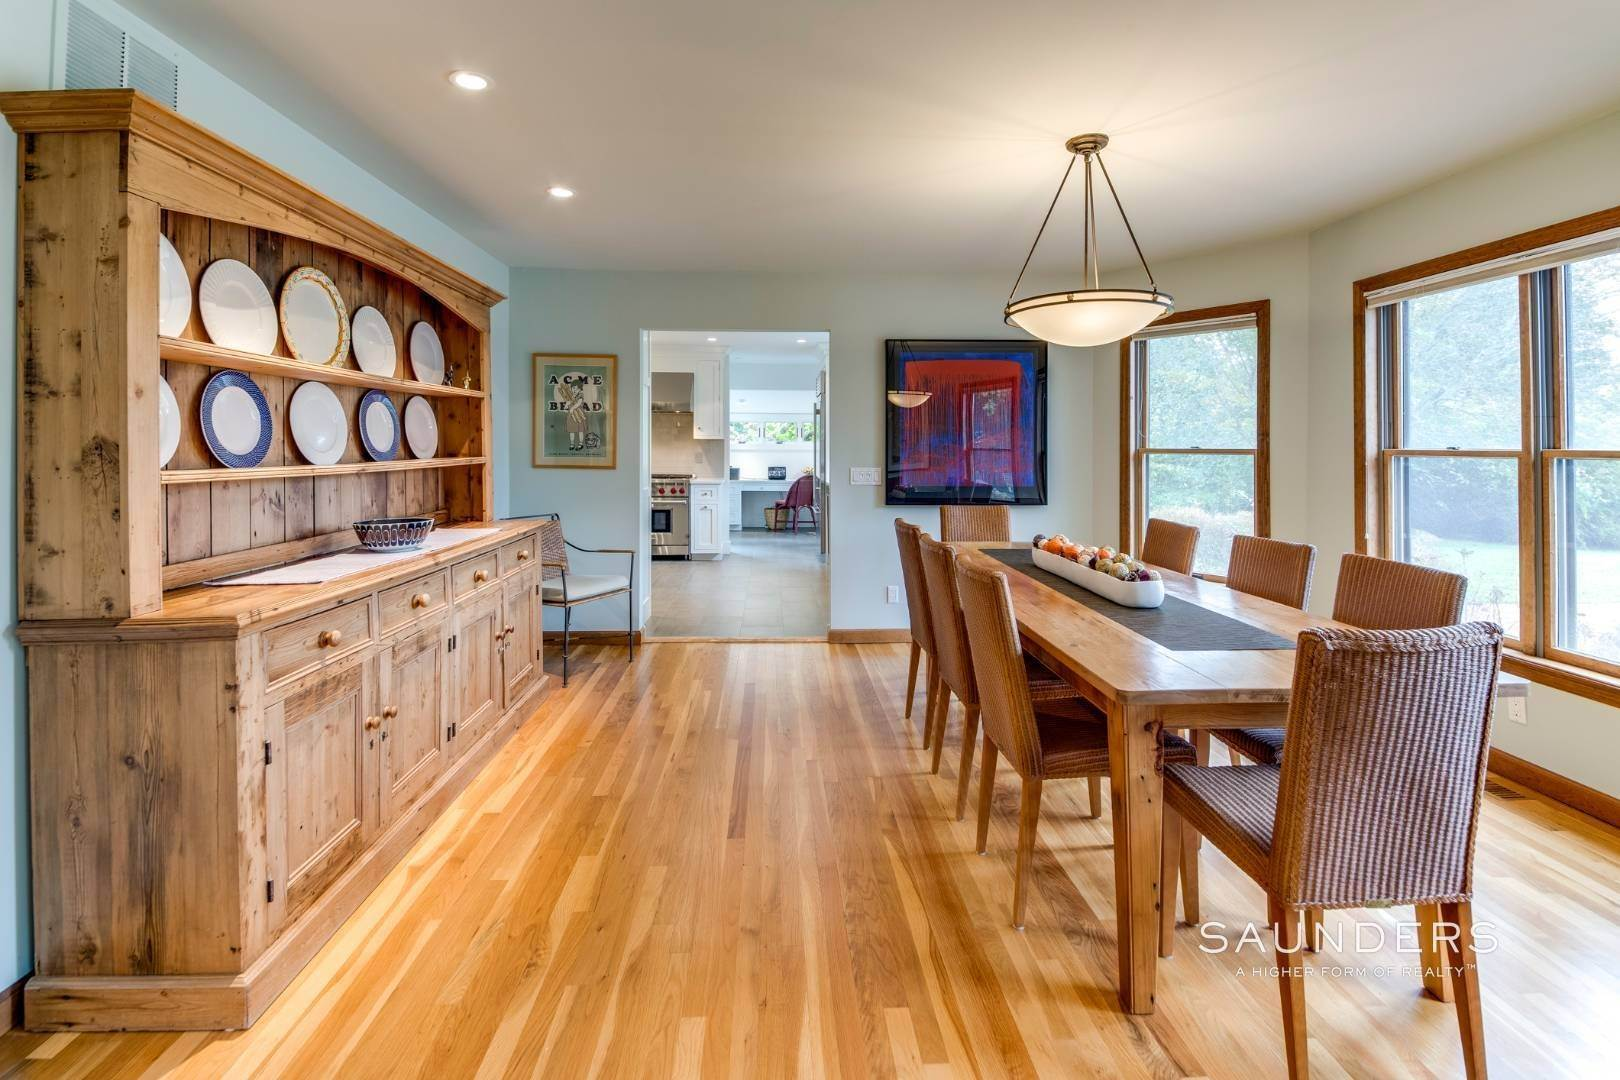 7. Single Family Homes for Sale at Welcome Home 11 Horseshoe Dr N, East Hampton, East Hampton Town, NY 11937